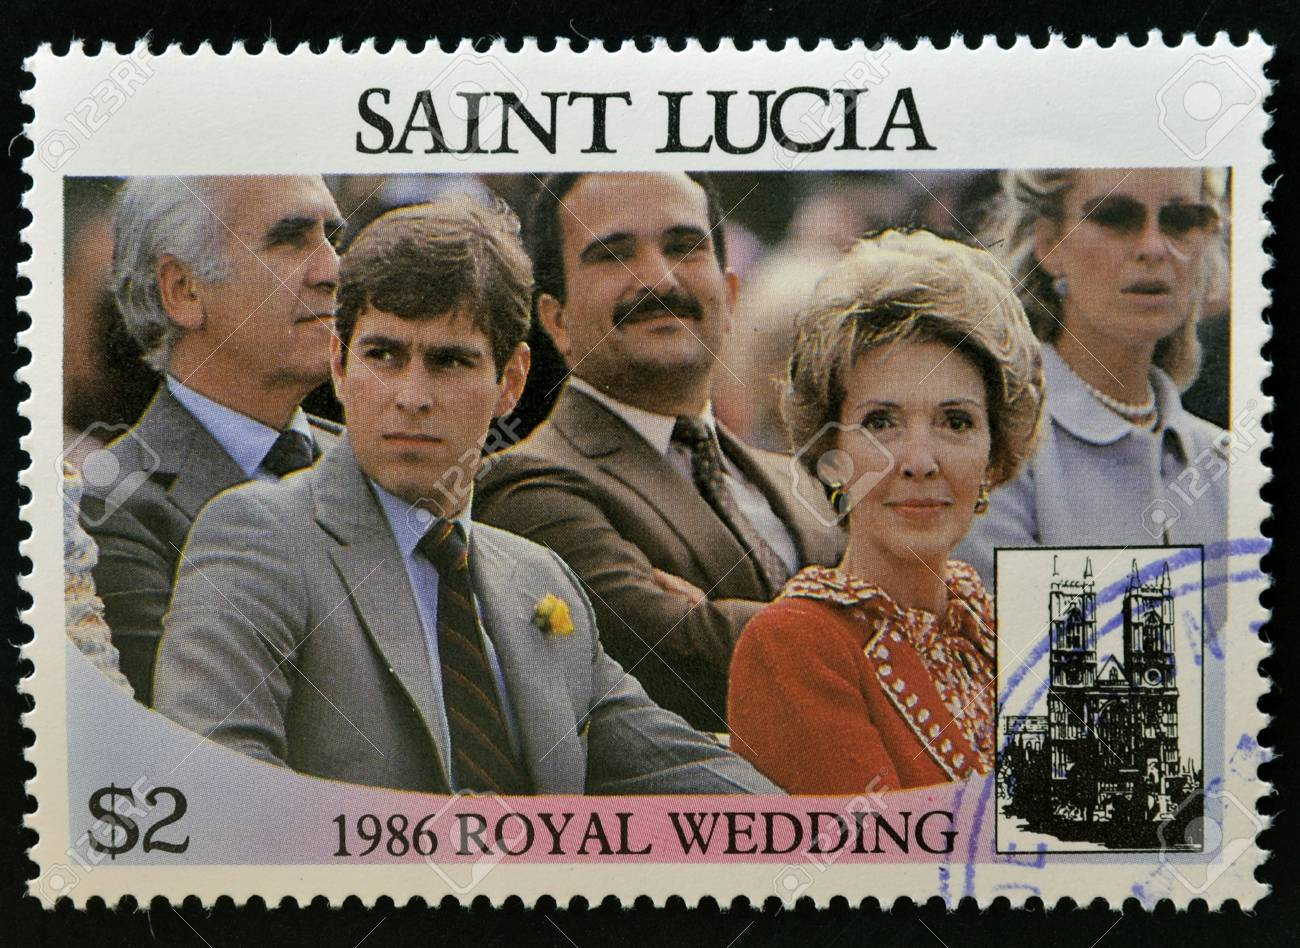 SAINT LUCIA - CIRCA 1986: A stamp printed in Saint Lucia shows a portrait of Prince Andrew of England and Nancy Reagan watching a parade, the royal wedding commemorative, circa 1986 Stock Photo - 14596874